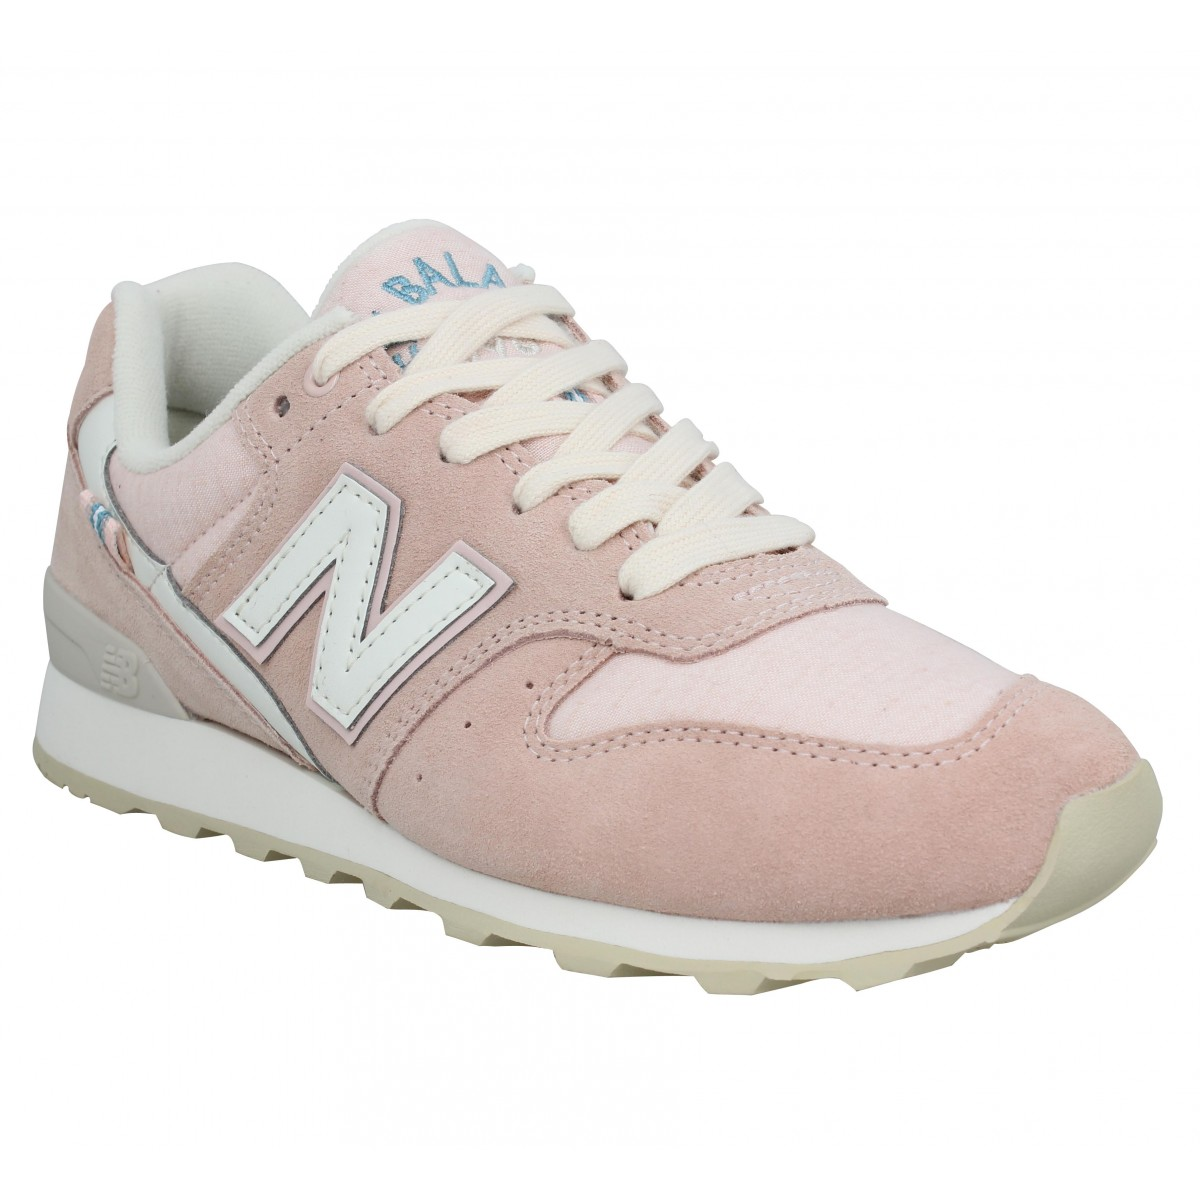 grossiste 8c9d7 122cf NEW BALANCE 996 velours Femme Rose